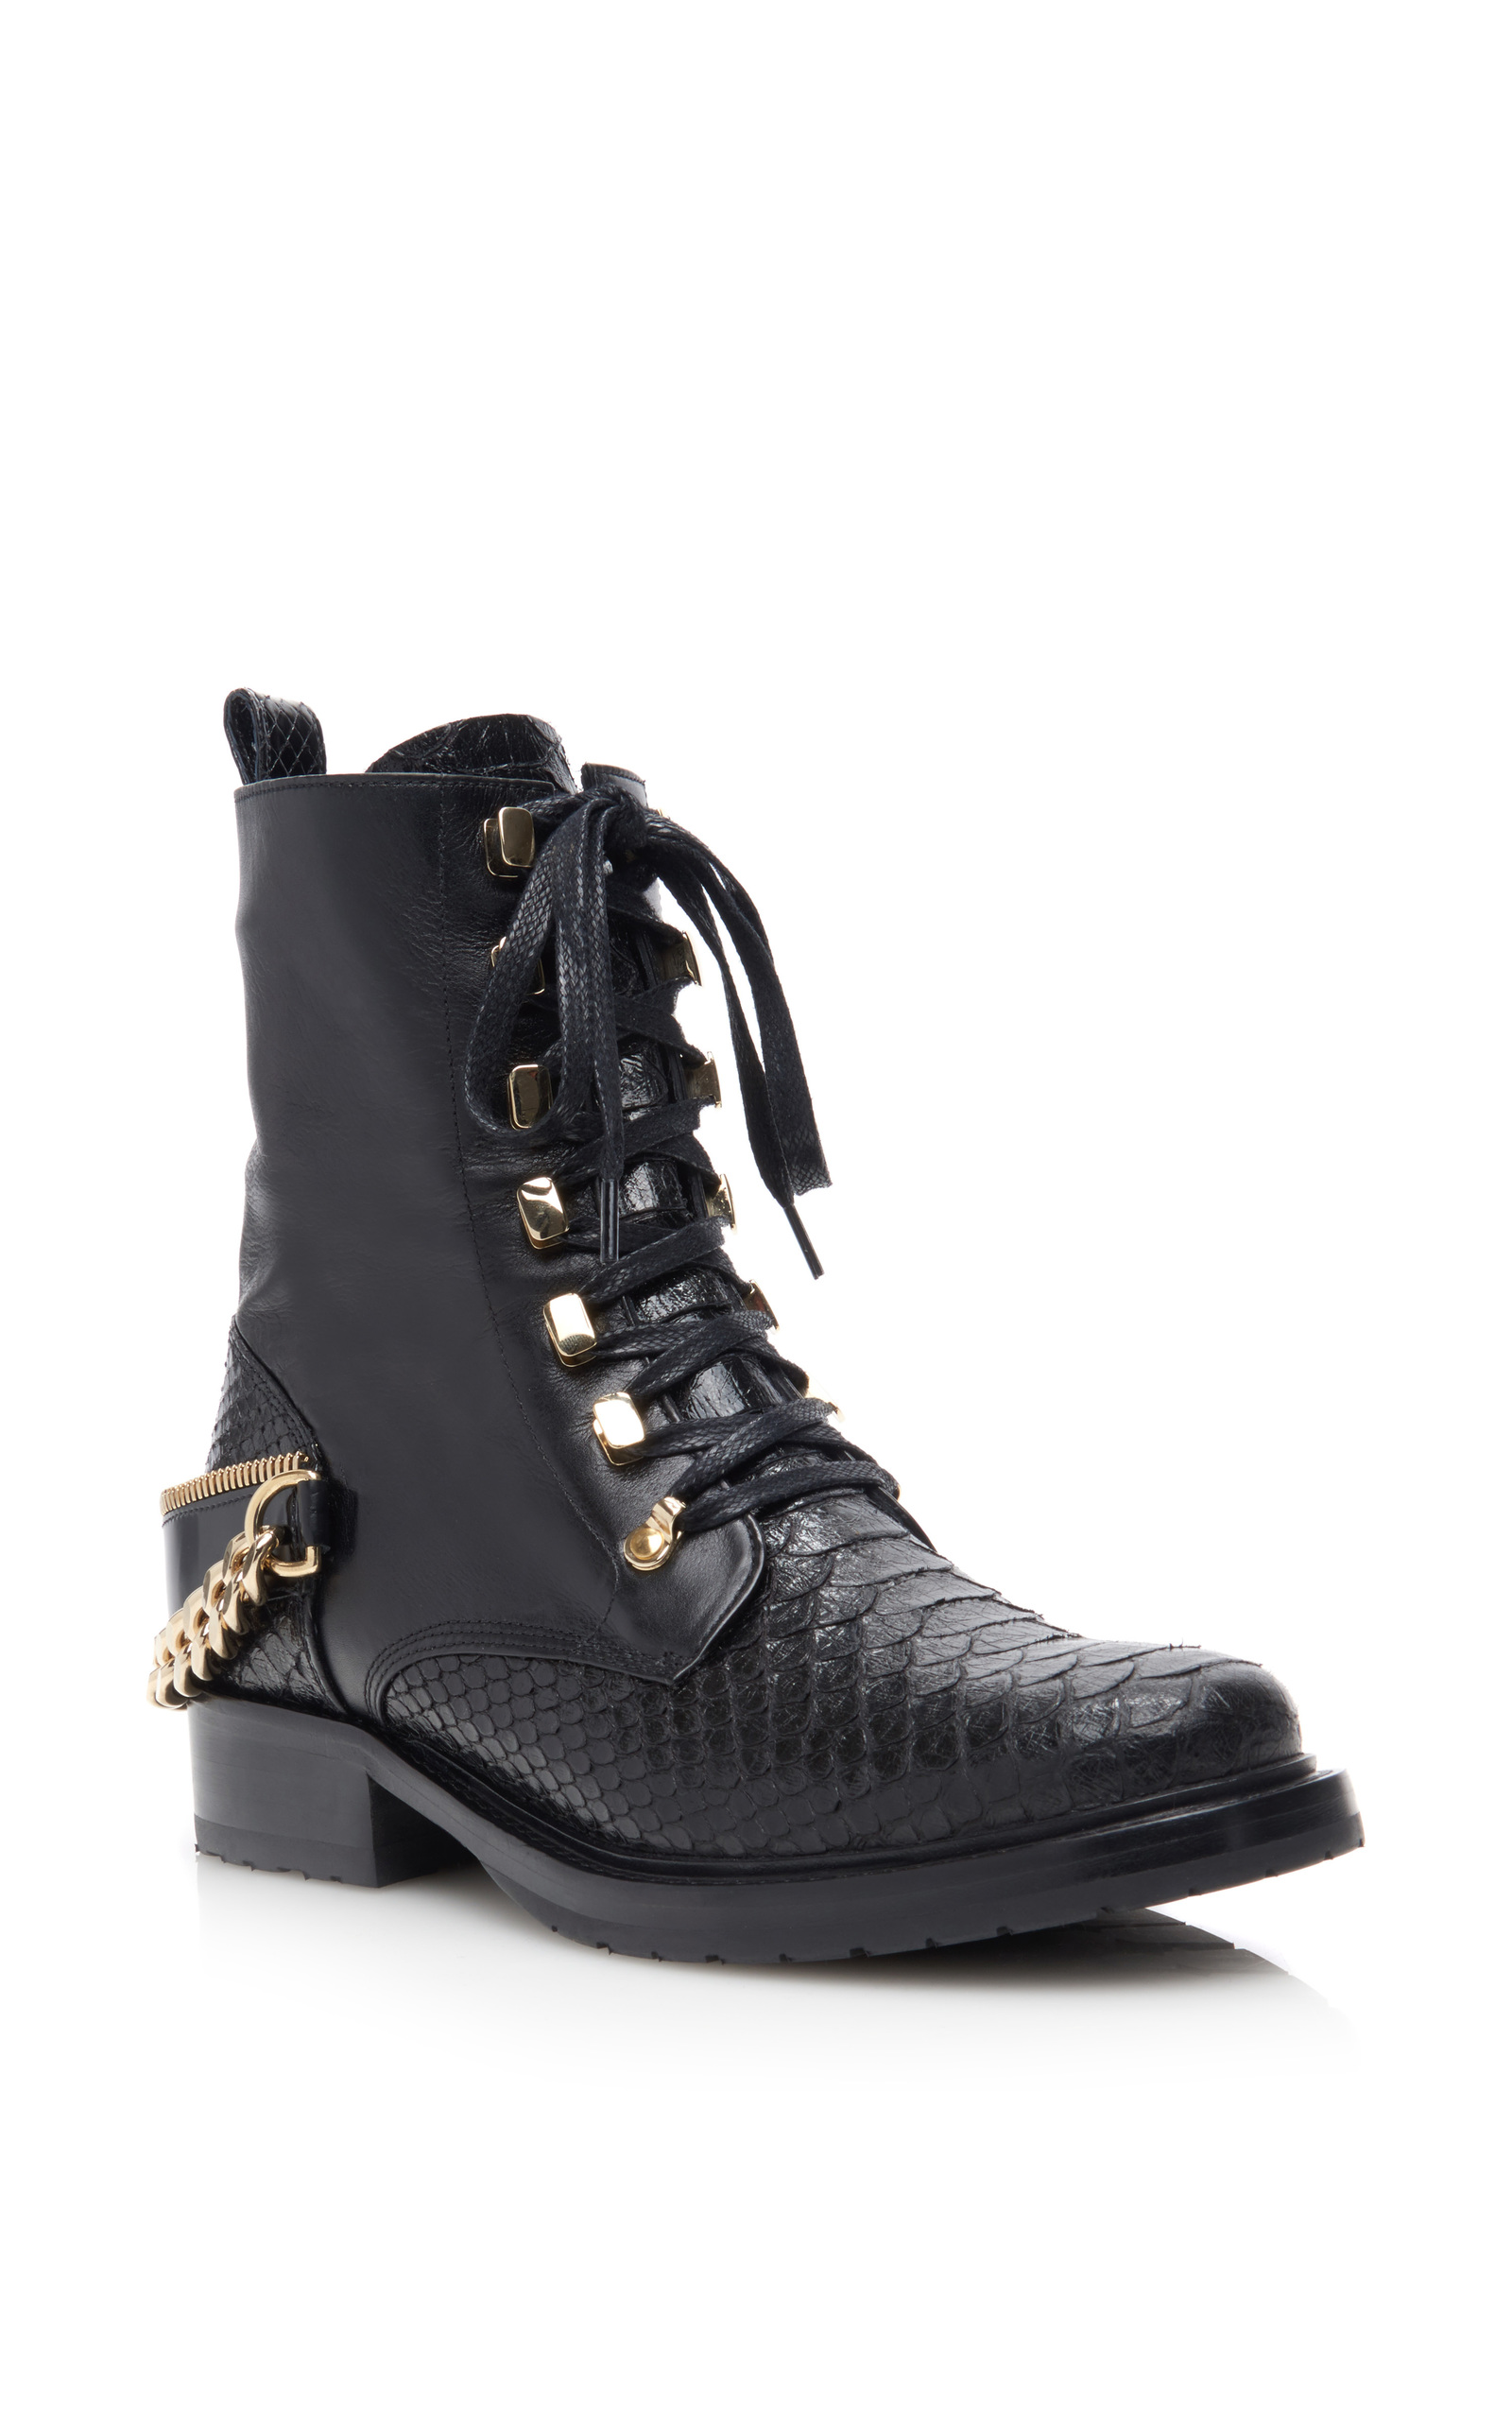 Lanvin Leather Lace-Up Boots